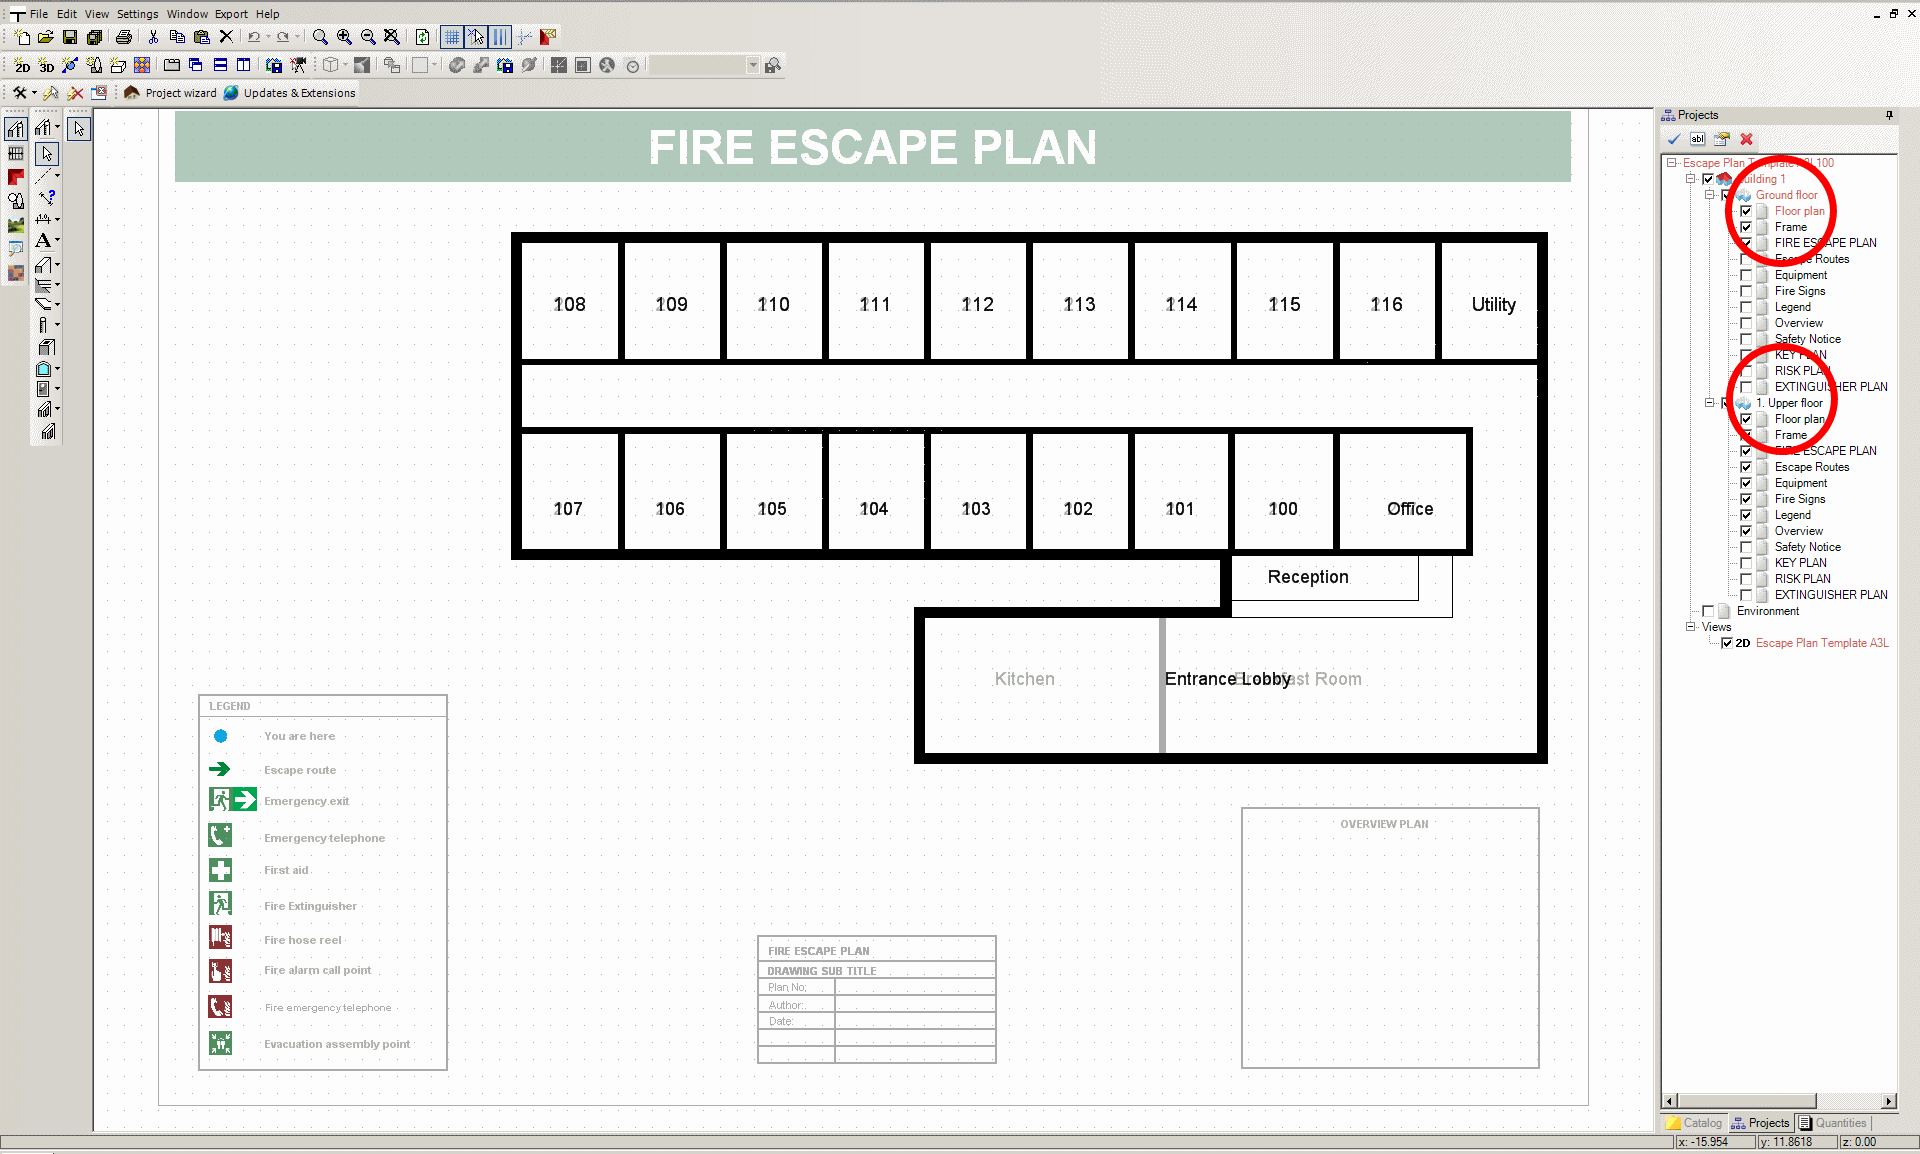 Visual Building Topic Fire Escape Plan For Hotel With